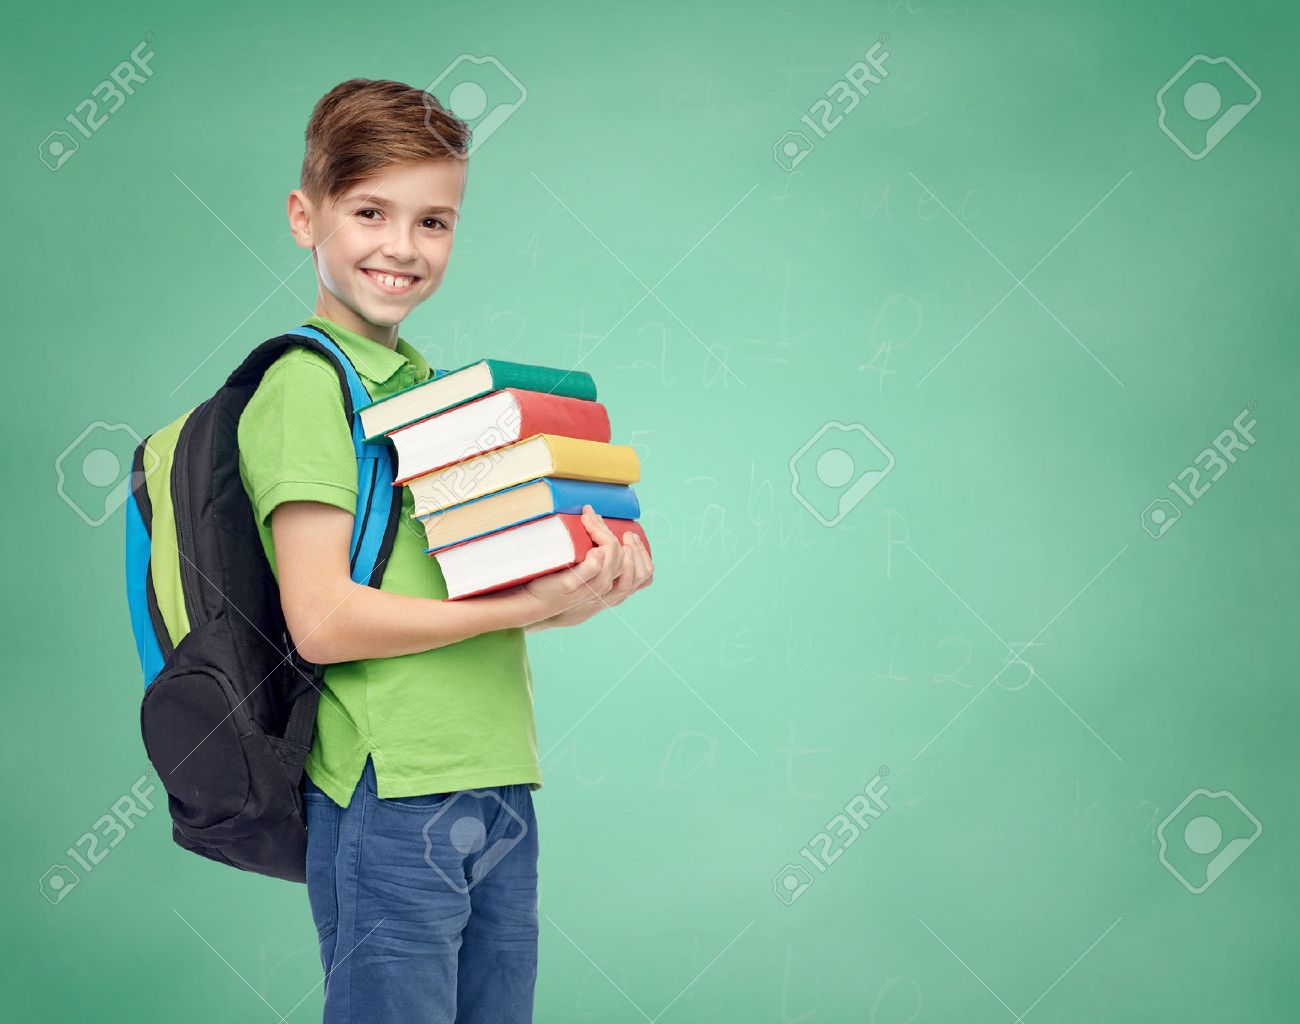 happy smiling student boy with school bag and books over green school chalk board background - 51808954